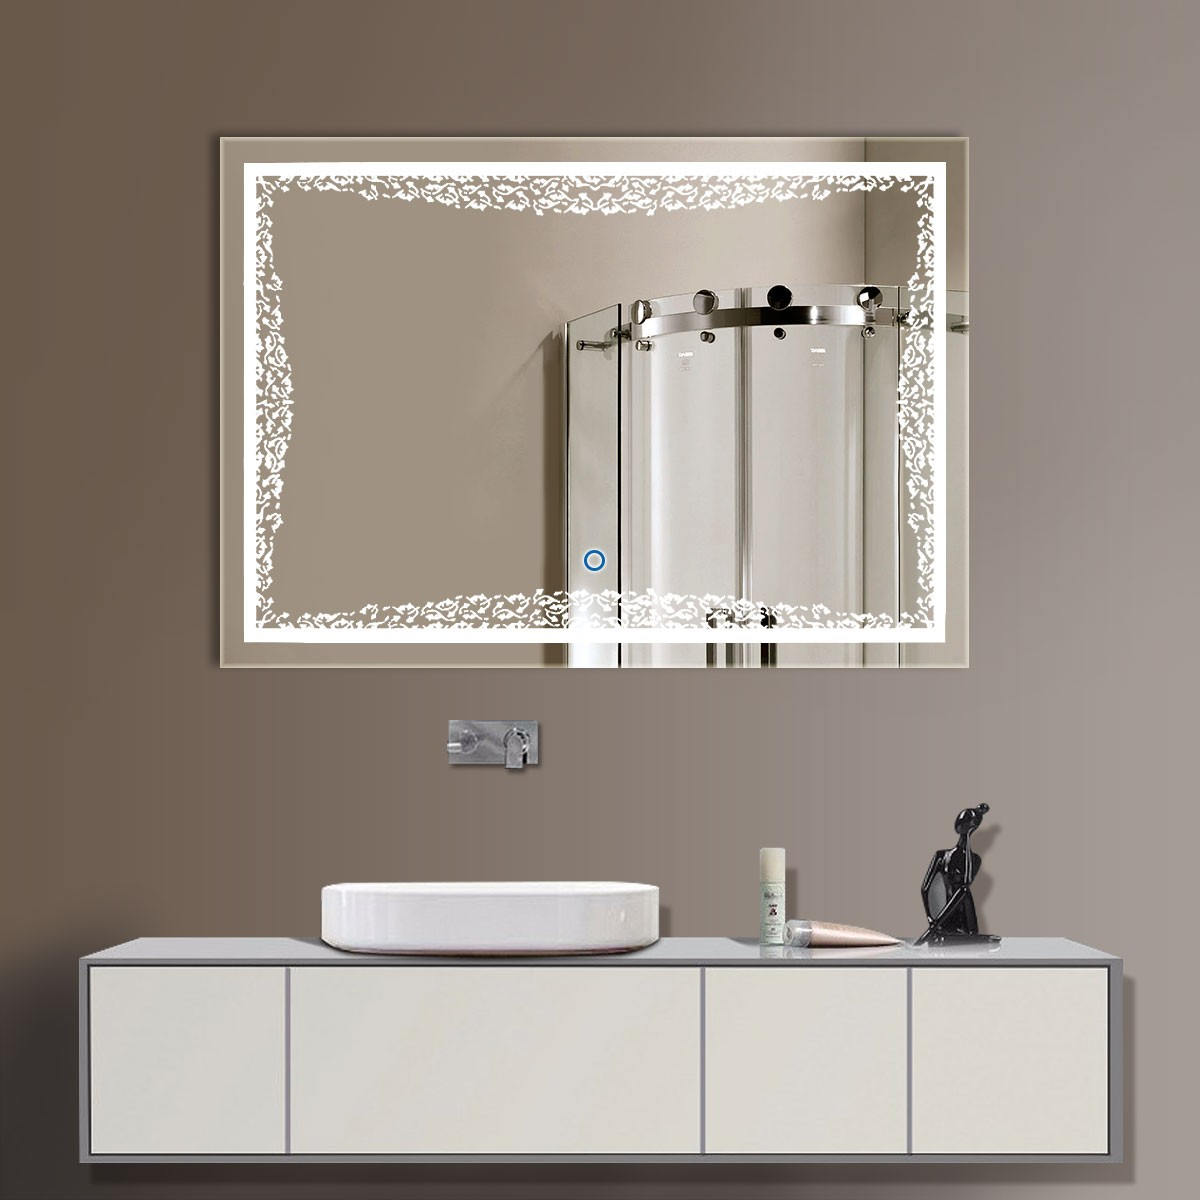 32 x 24 In Horizontal LED Bathroom Mirror, Touch Button (DK-OD-N011)